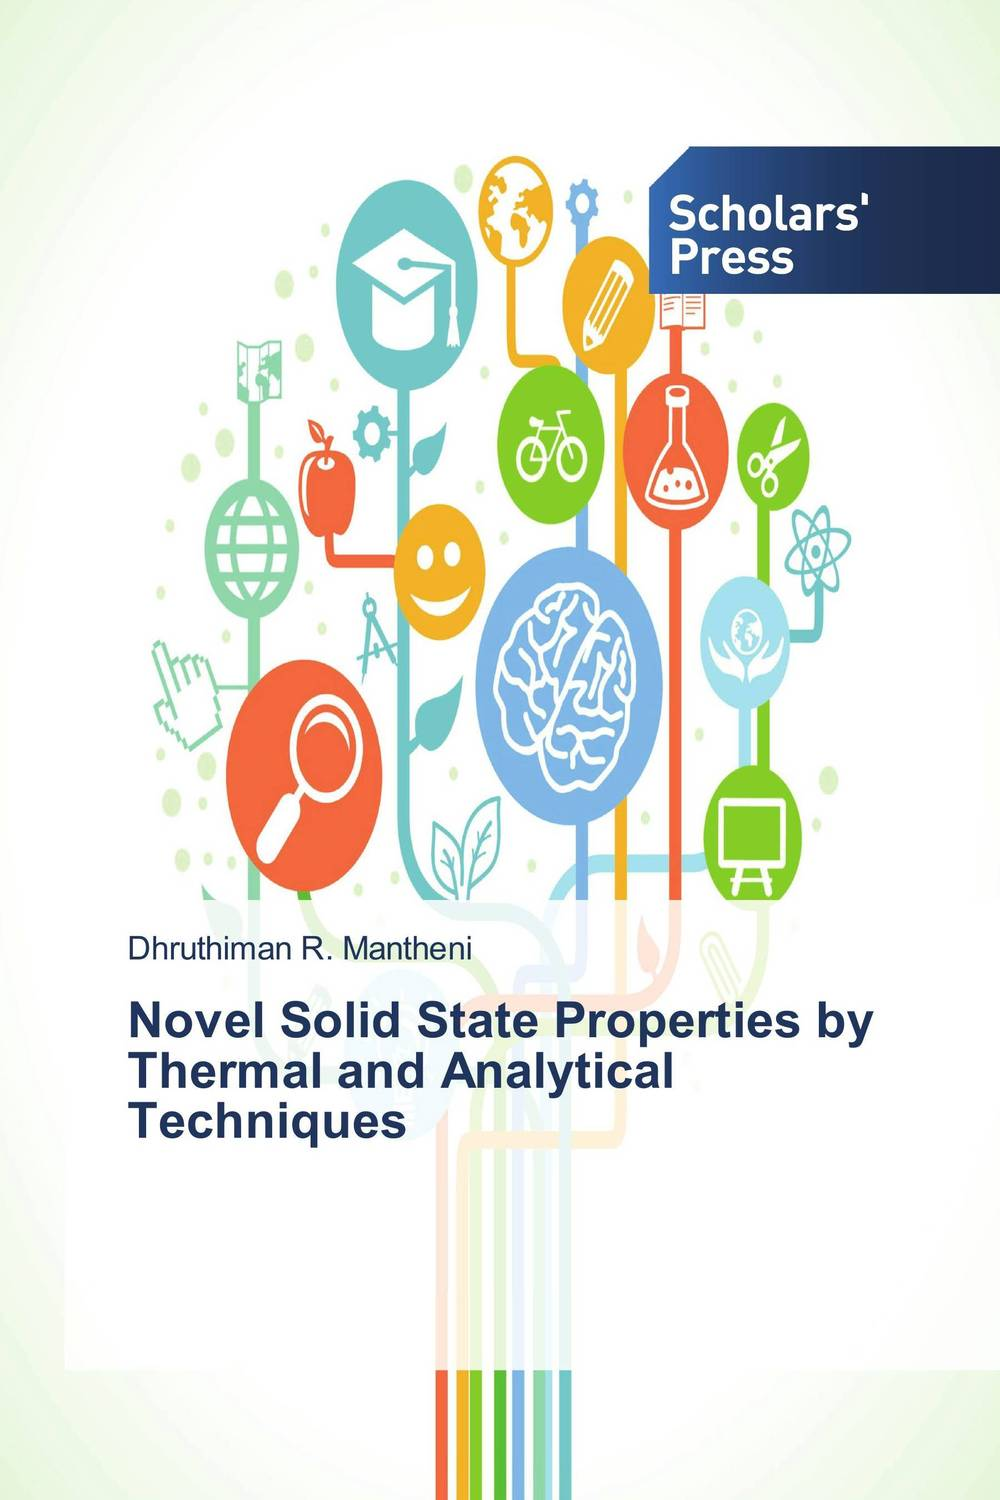 Novel Solid State Properties by Thermal and Analytical Techniques